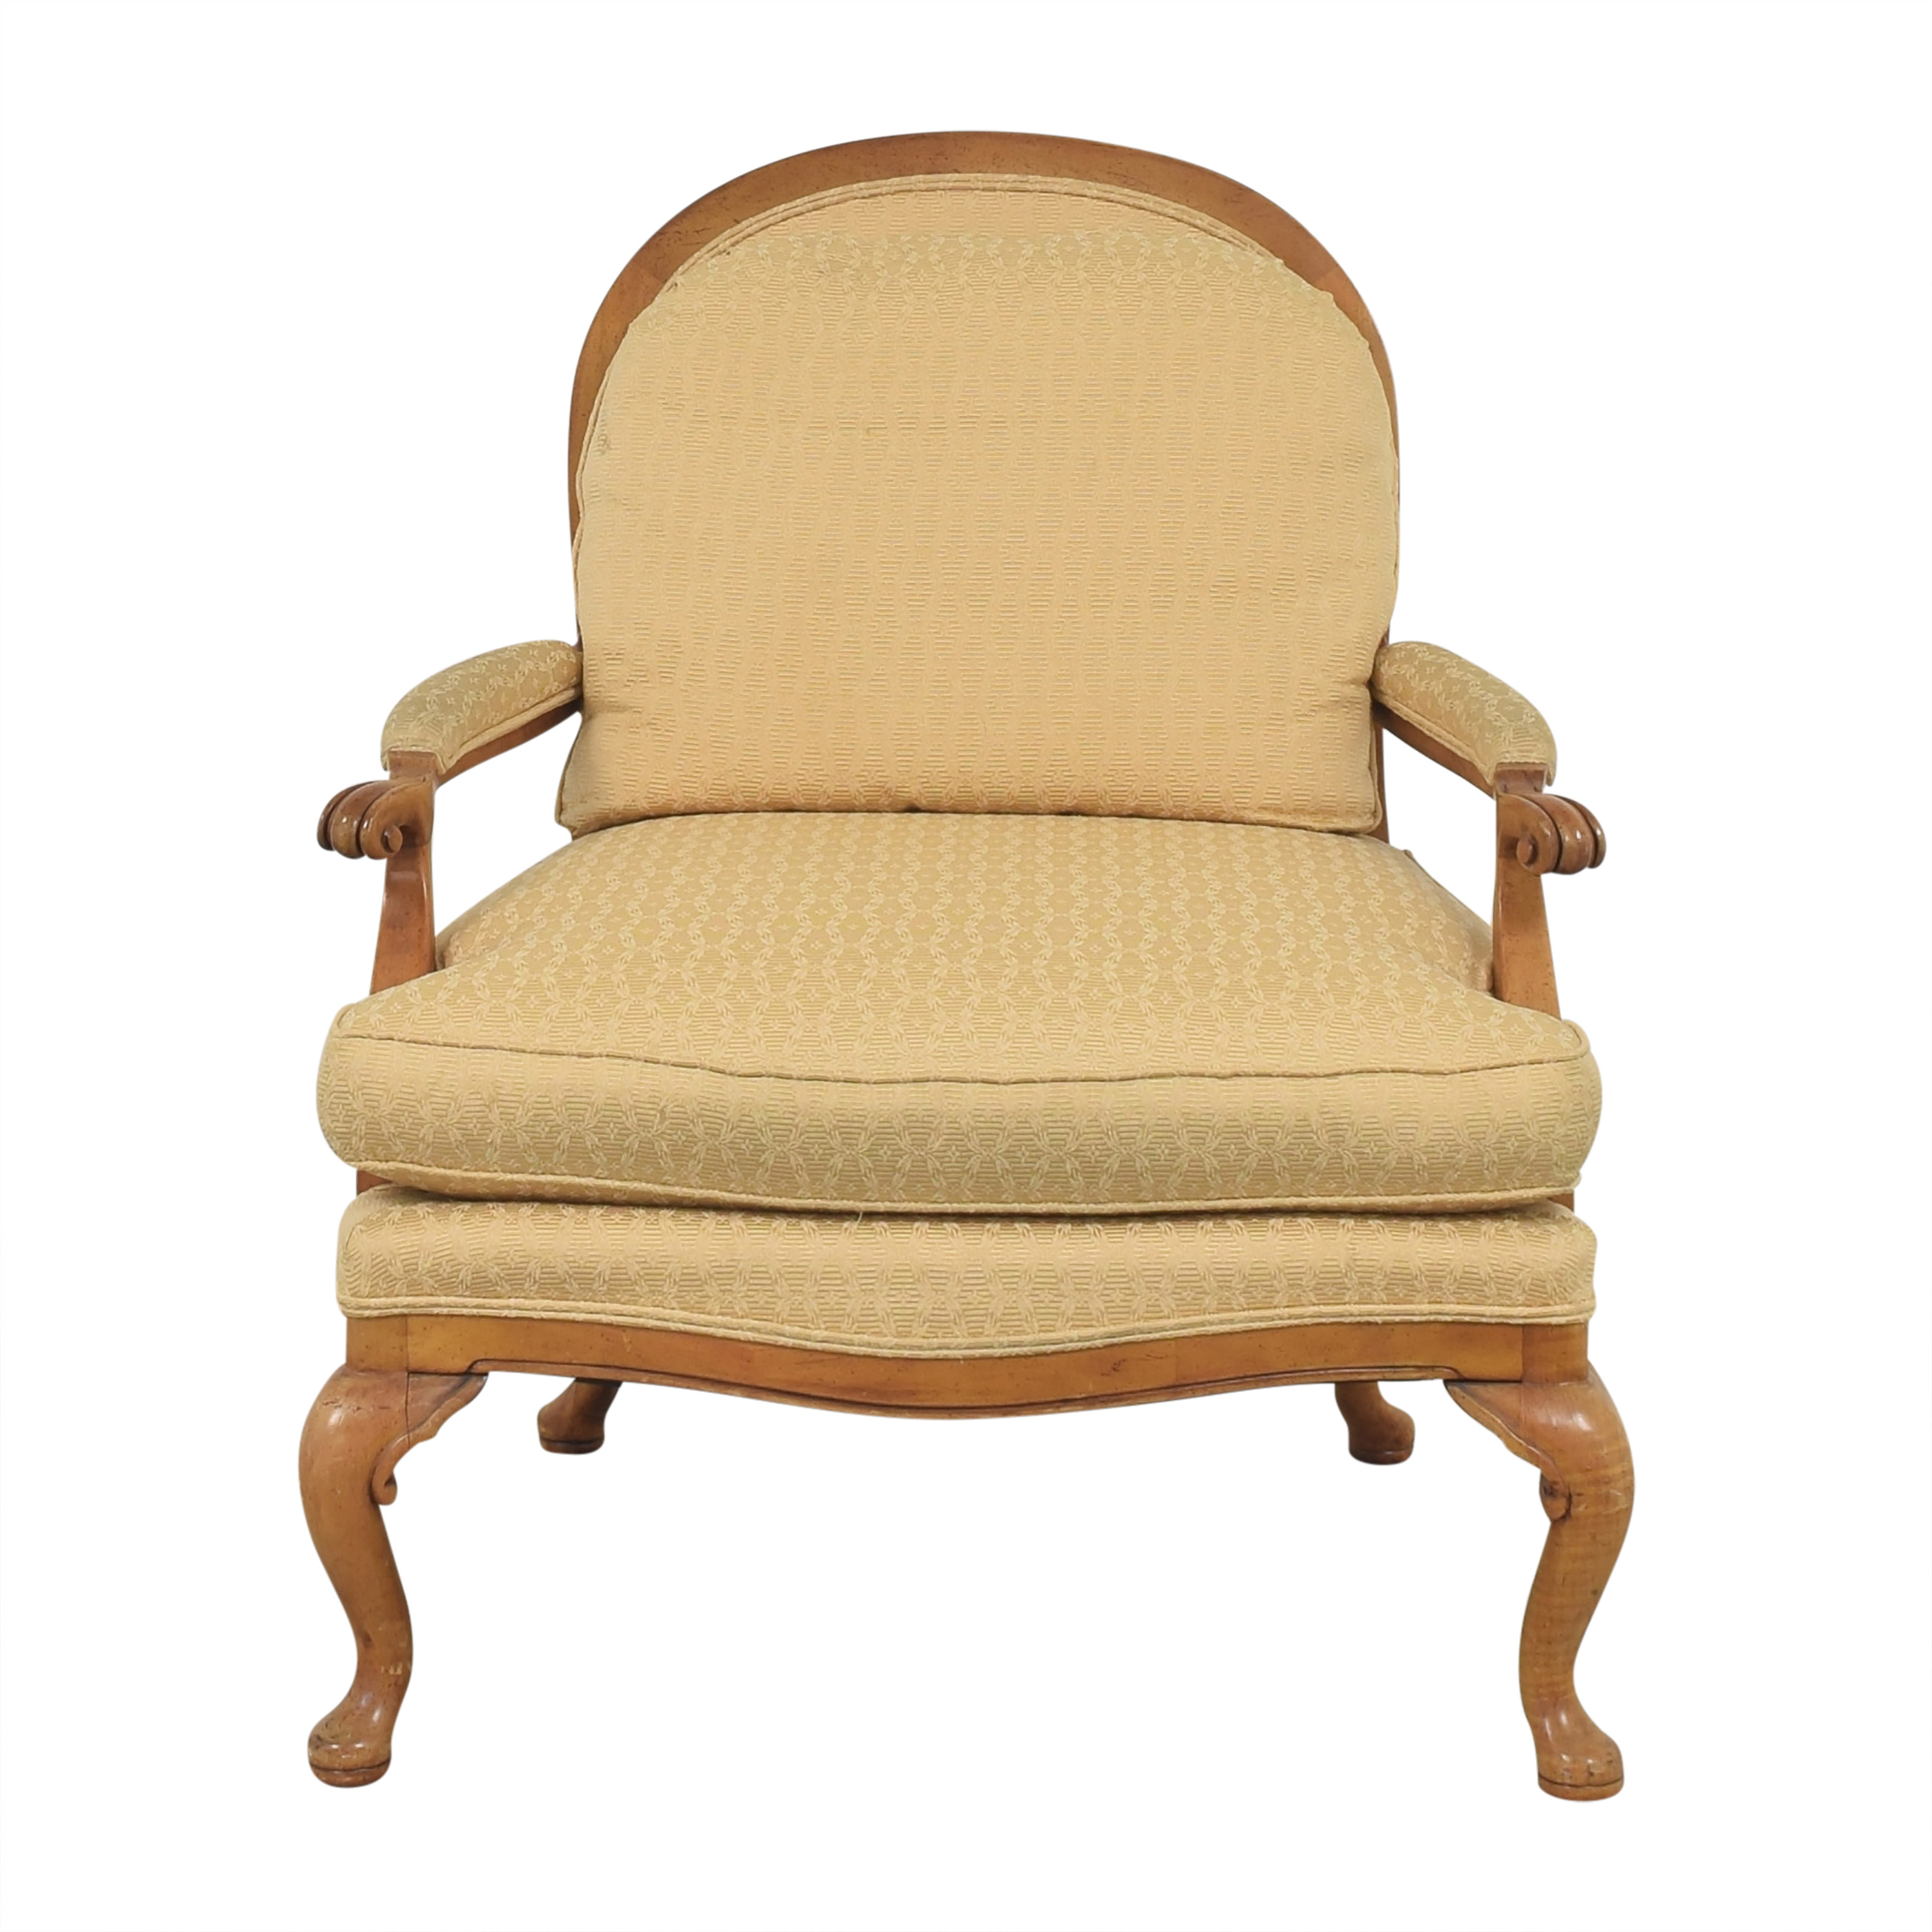 Highland House Furniture Highland House Accent Fauteuil Chair nj